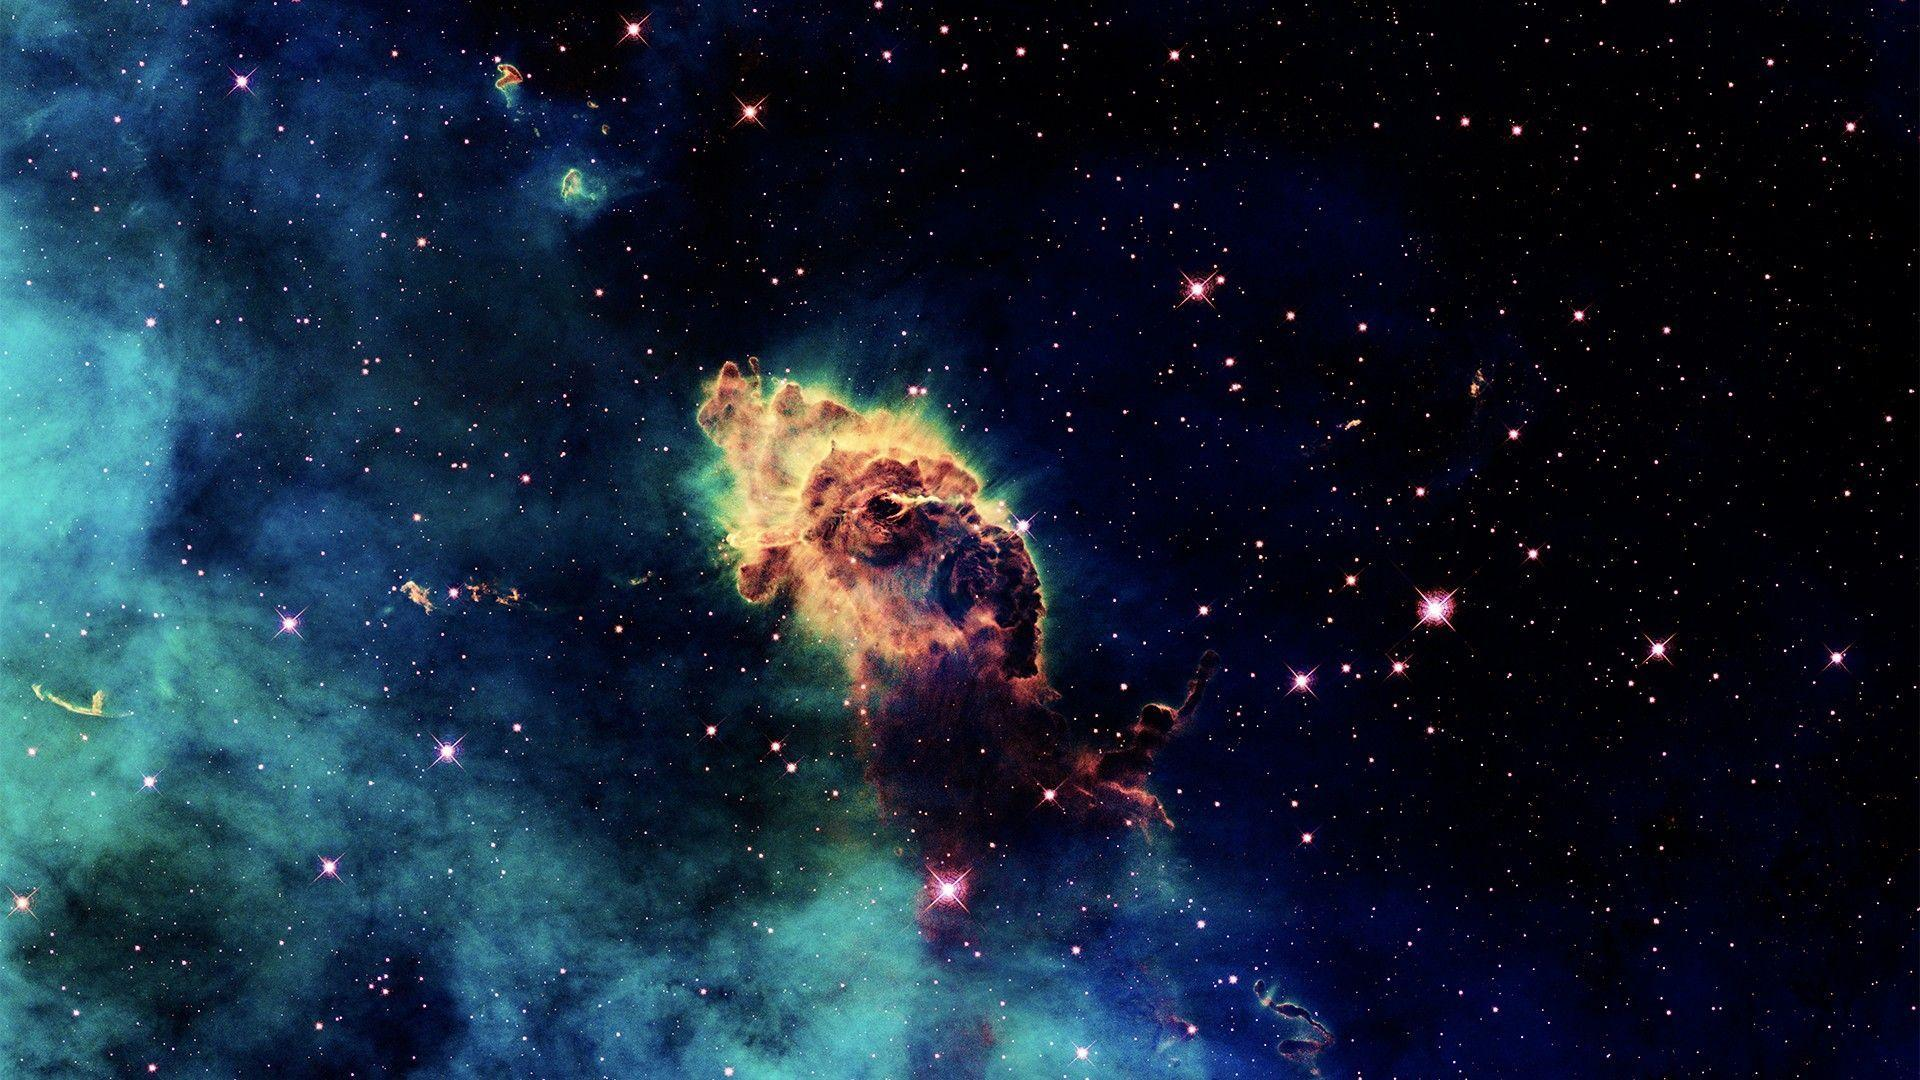 Wallpapers Hd 1080p Space Wallpaper Cave